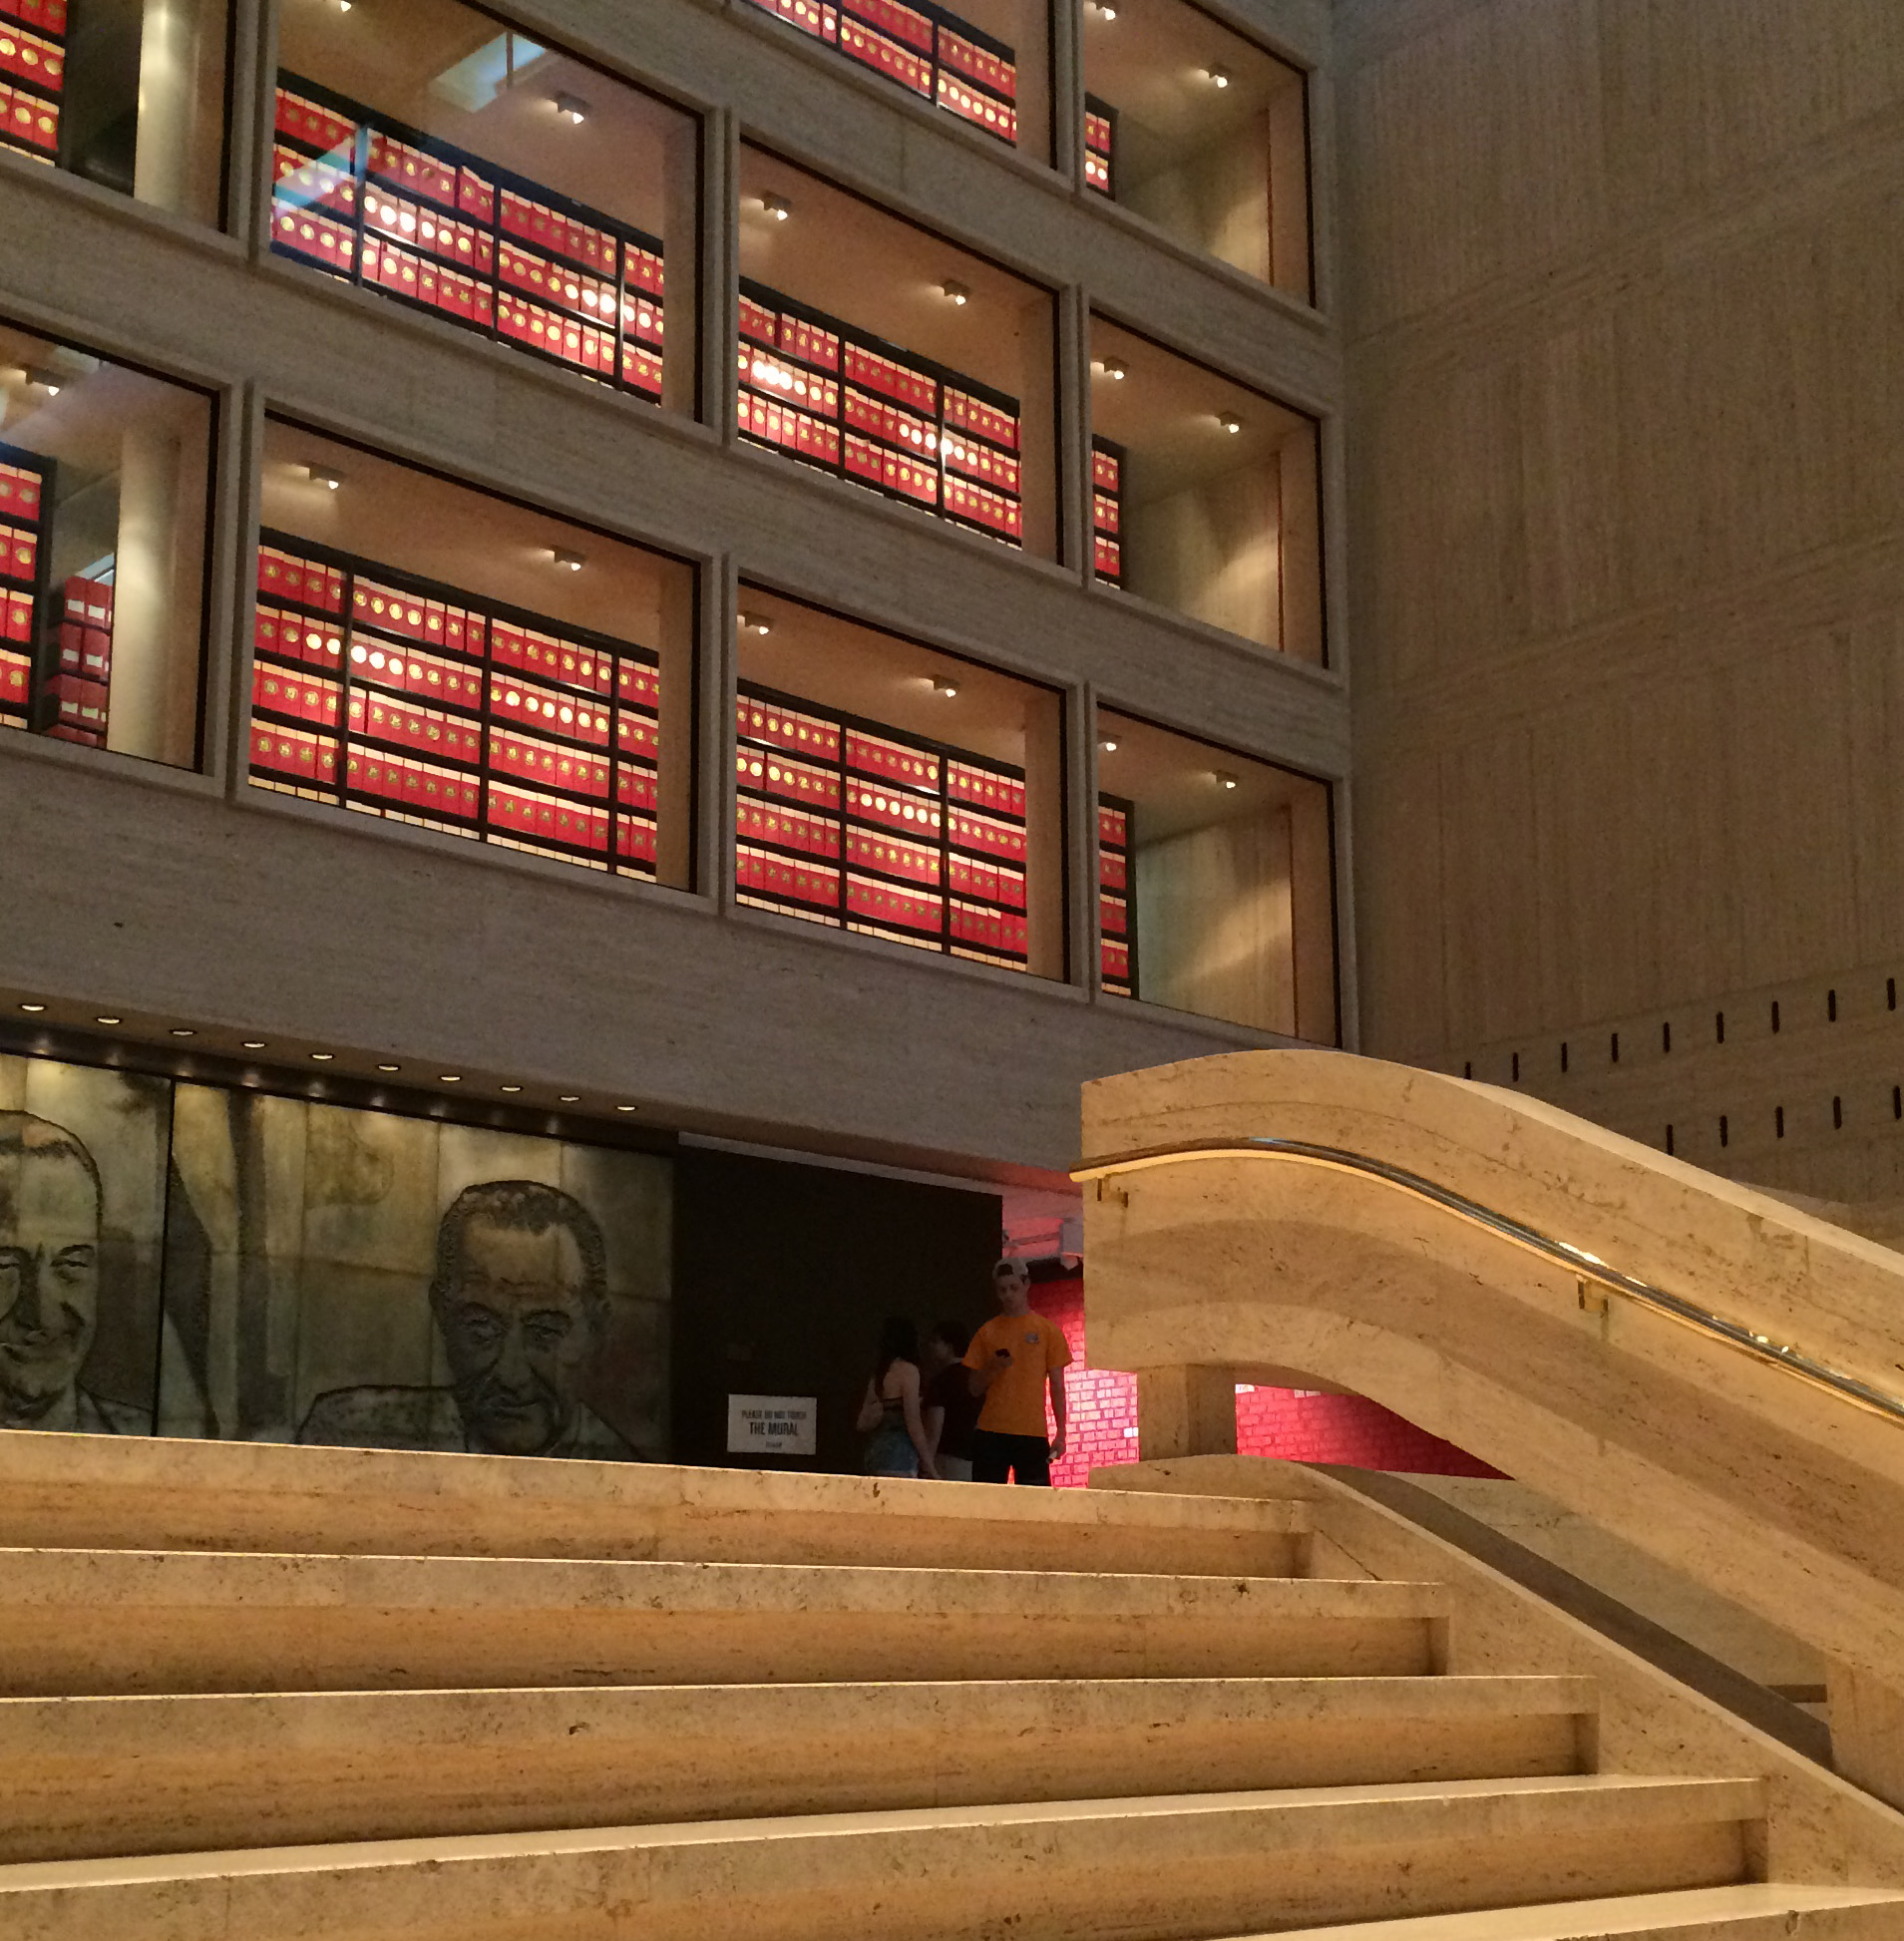 Glass windows at the Lyndon Baines Johnson Library and Museum expose the bright red boxes containing 45 million pages of historical documents gathered during LBJ's presidency (1963-1969). The library was dedicated in May1971; Johnson died in January 1973. (Photo by E'Louise Ondash)